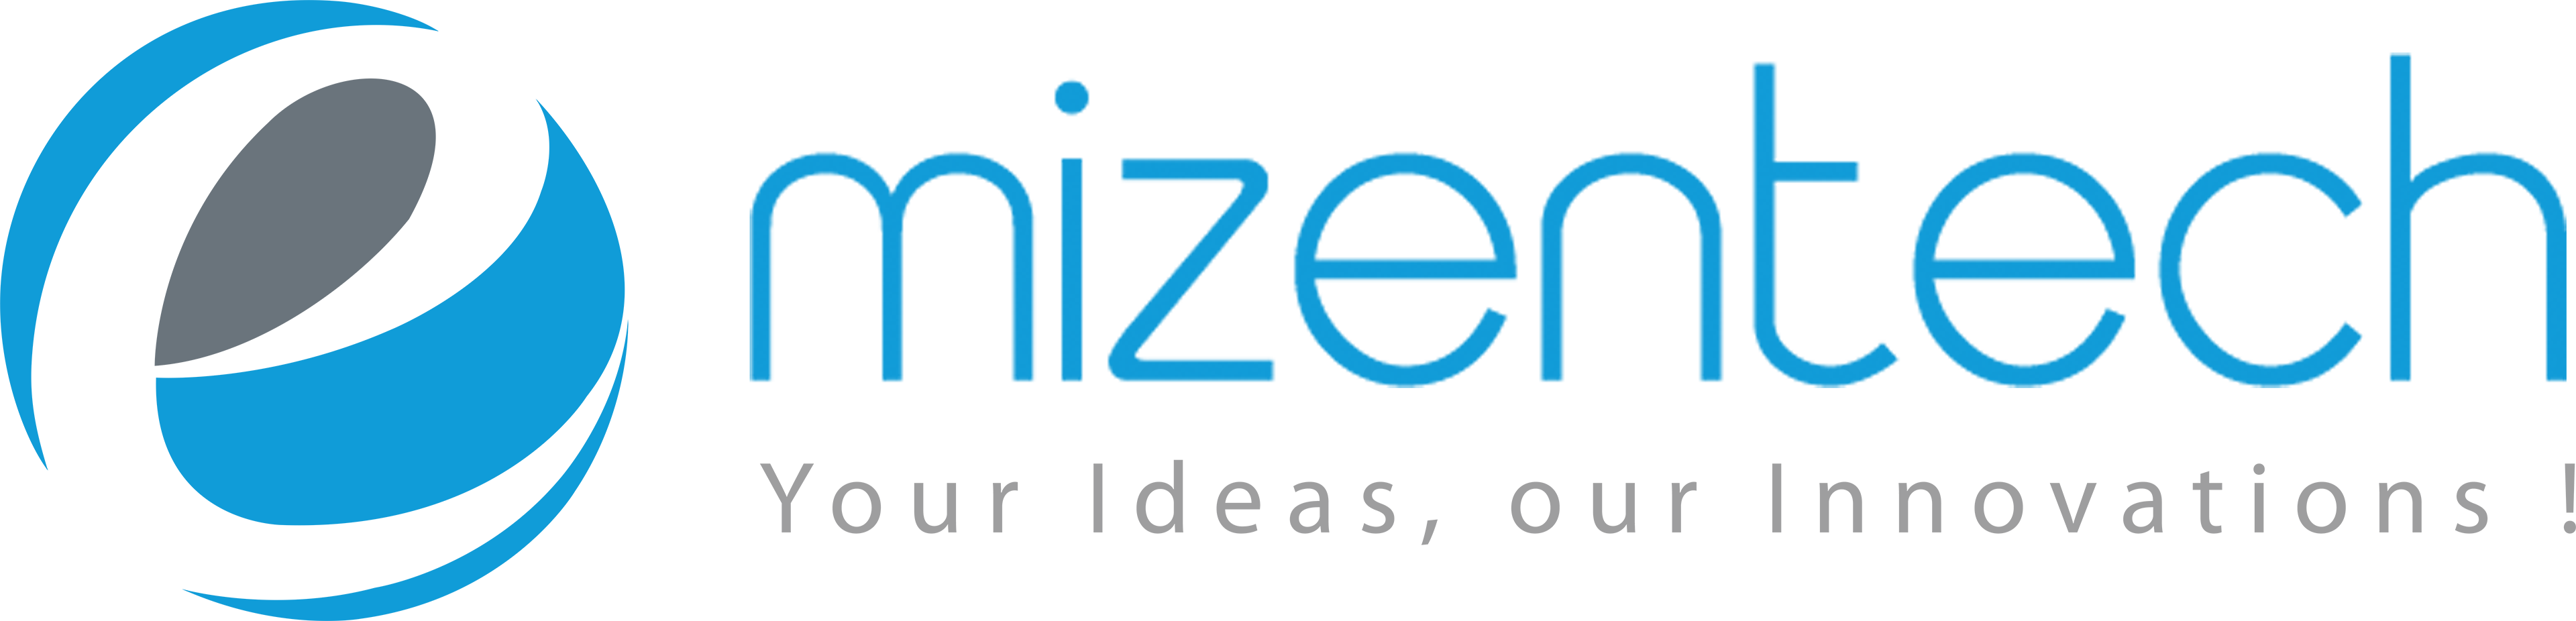 Emizen Tech Private Limited Logo